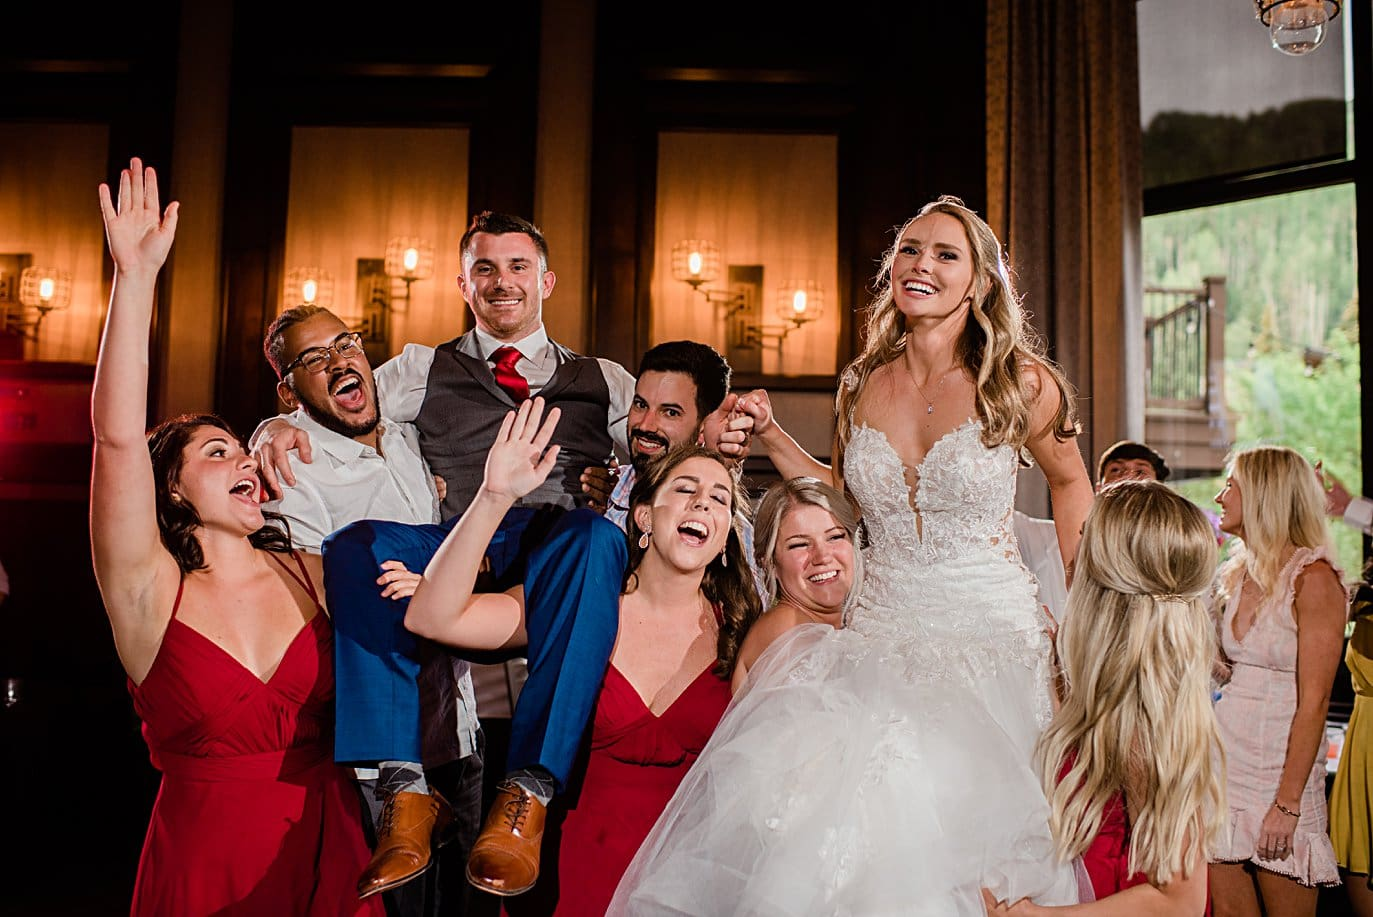 bridal party lifts bride and groom during reception at Vail Manor Lodge wedding by Aspen wedding photographer Jennie Crate